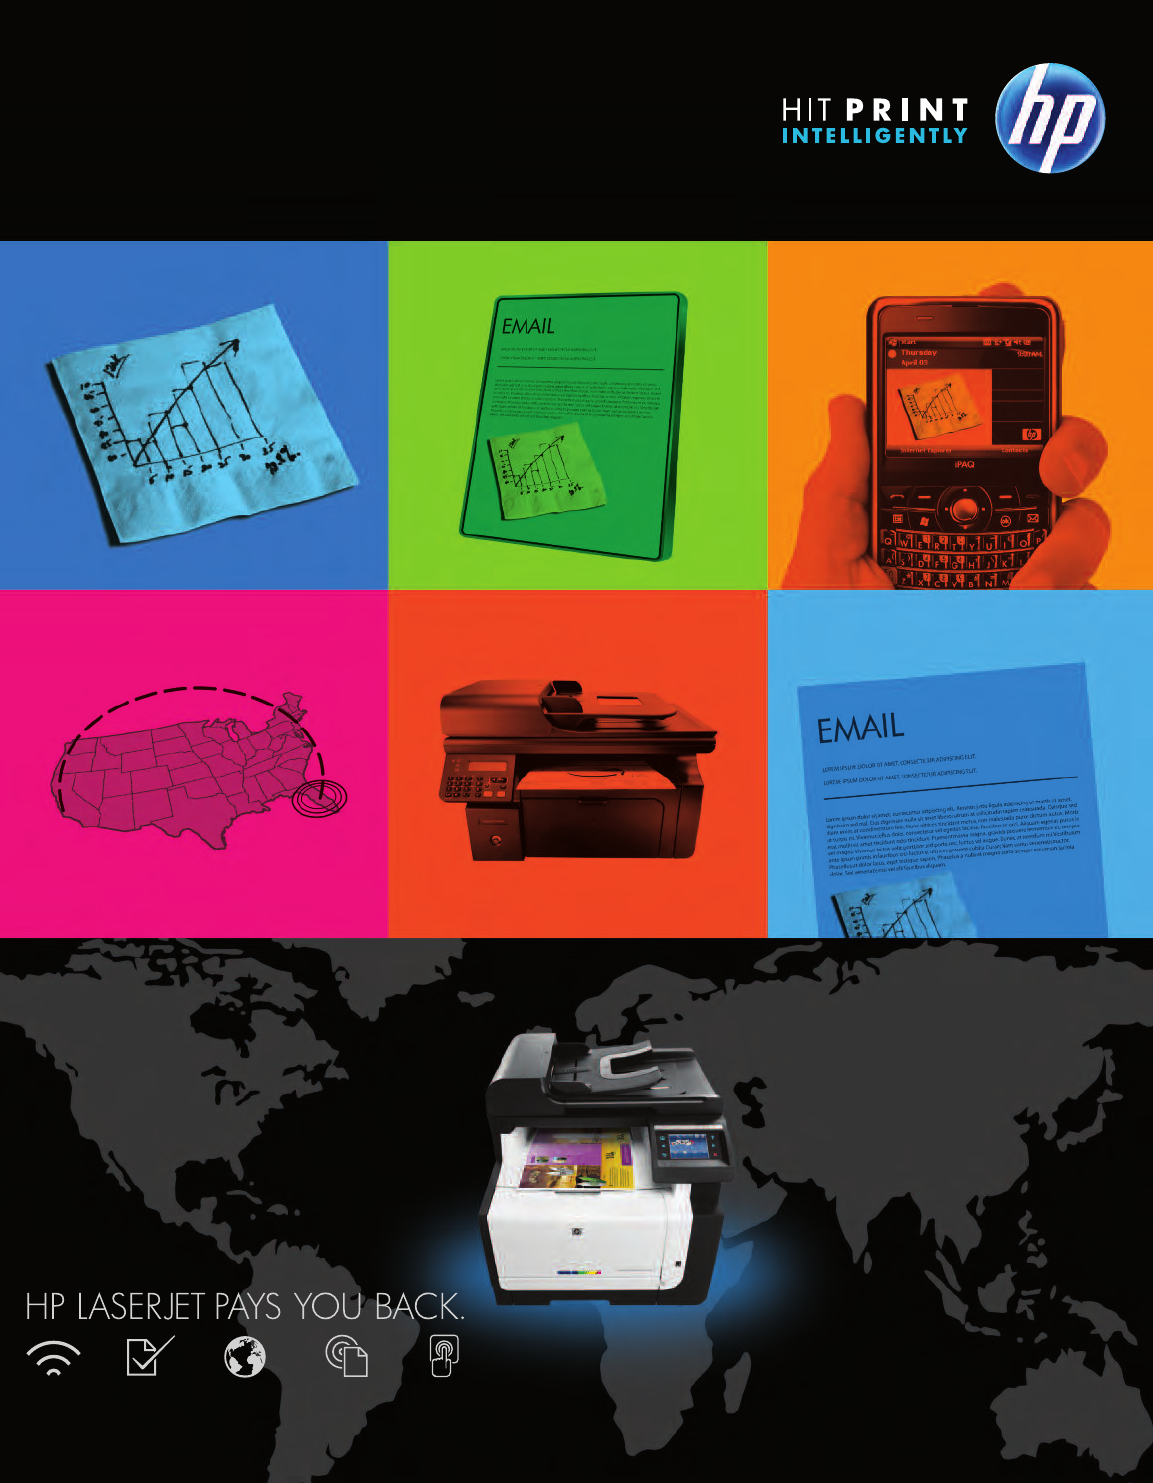 HP PRINTING AND DIGITAL IMAGING PRODUCTS SELECTION GUIDE